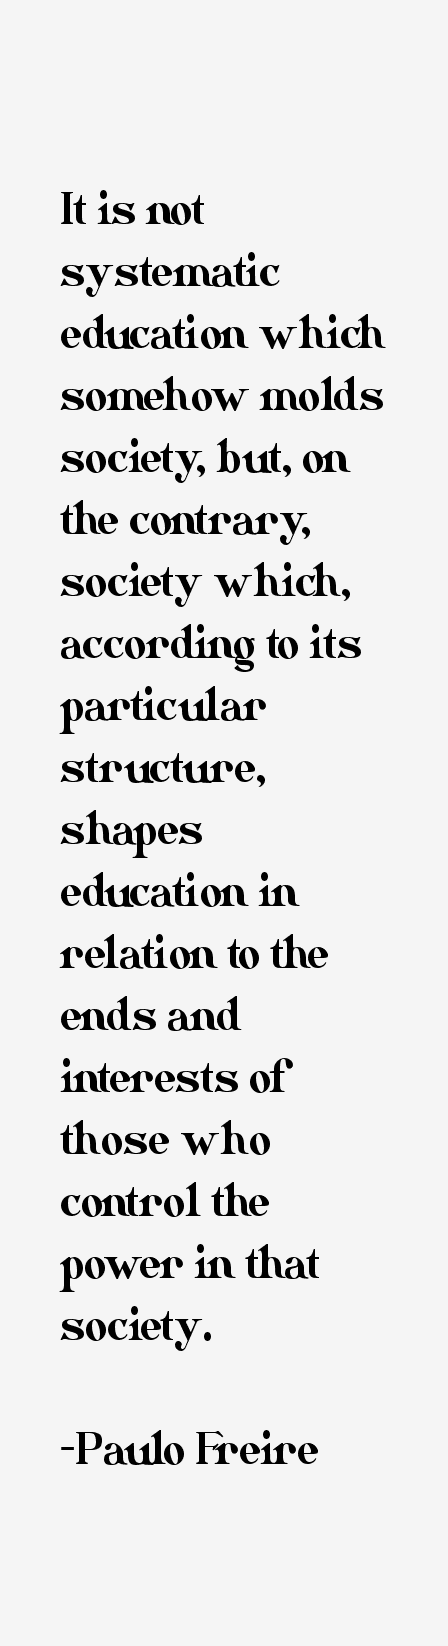 paulo freires critique of education in his essay banking concept of education